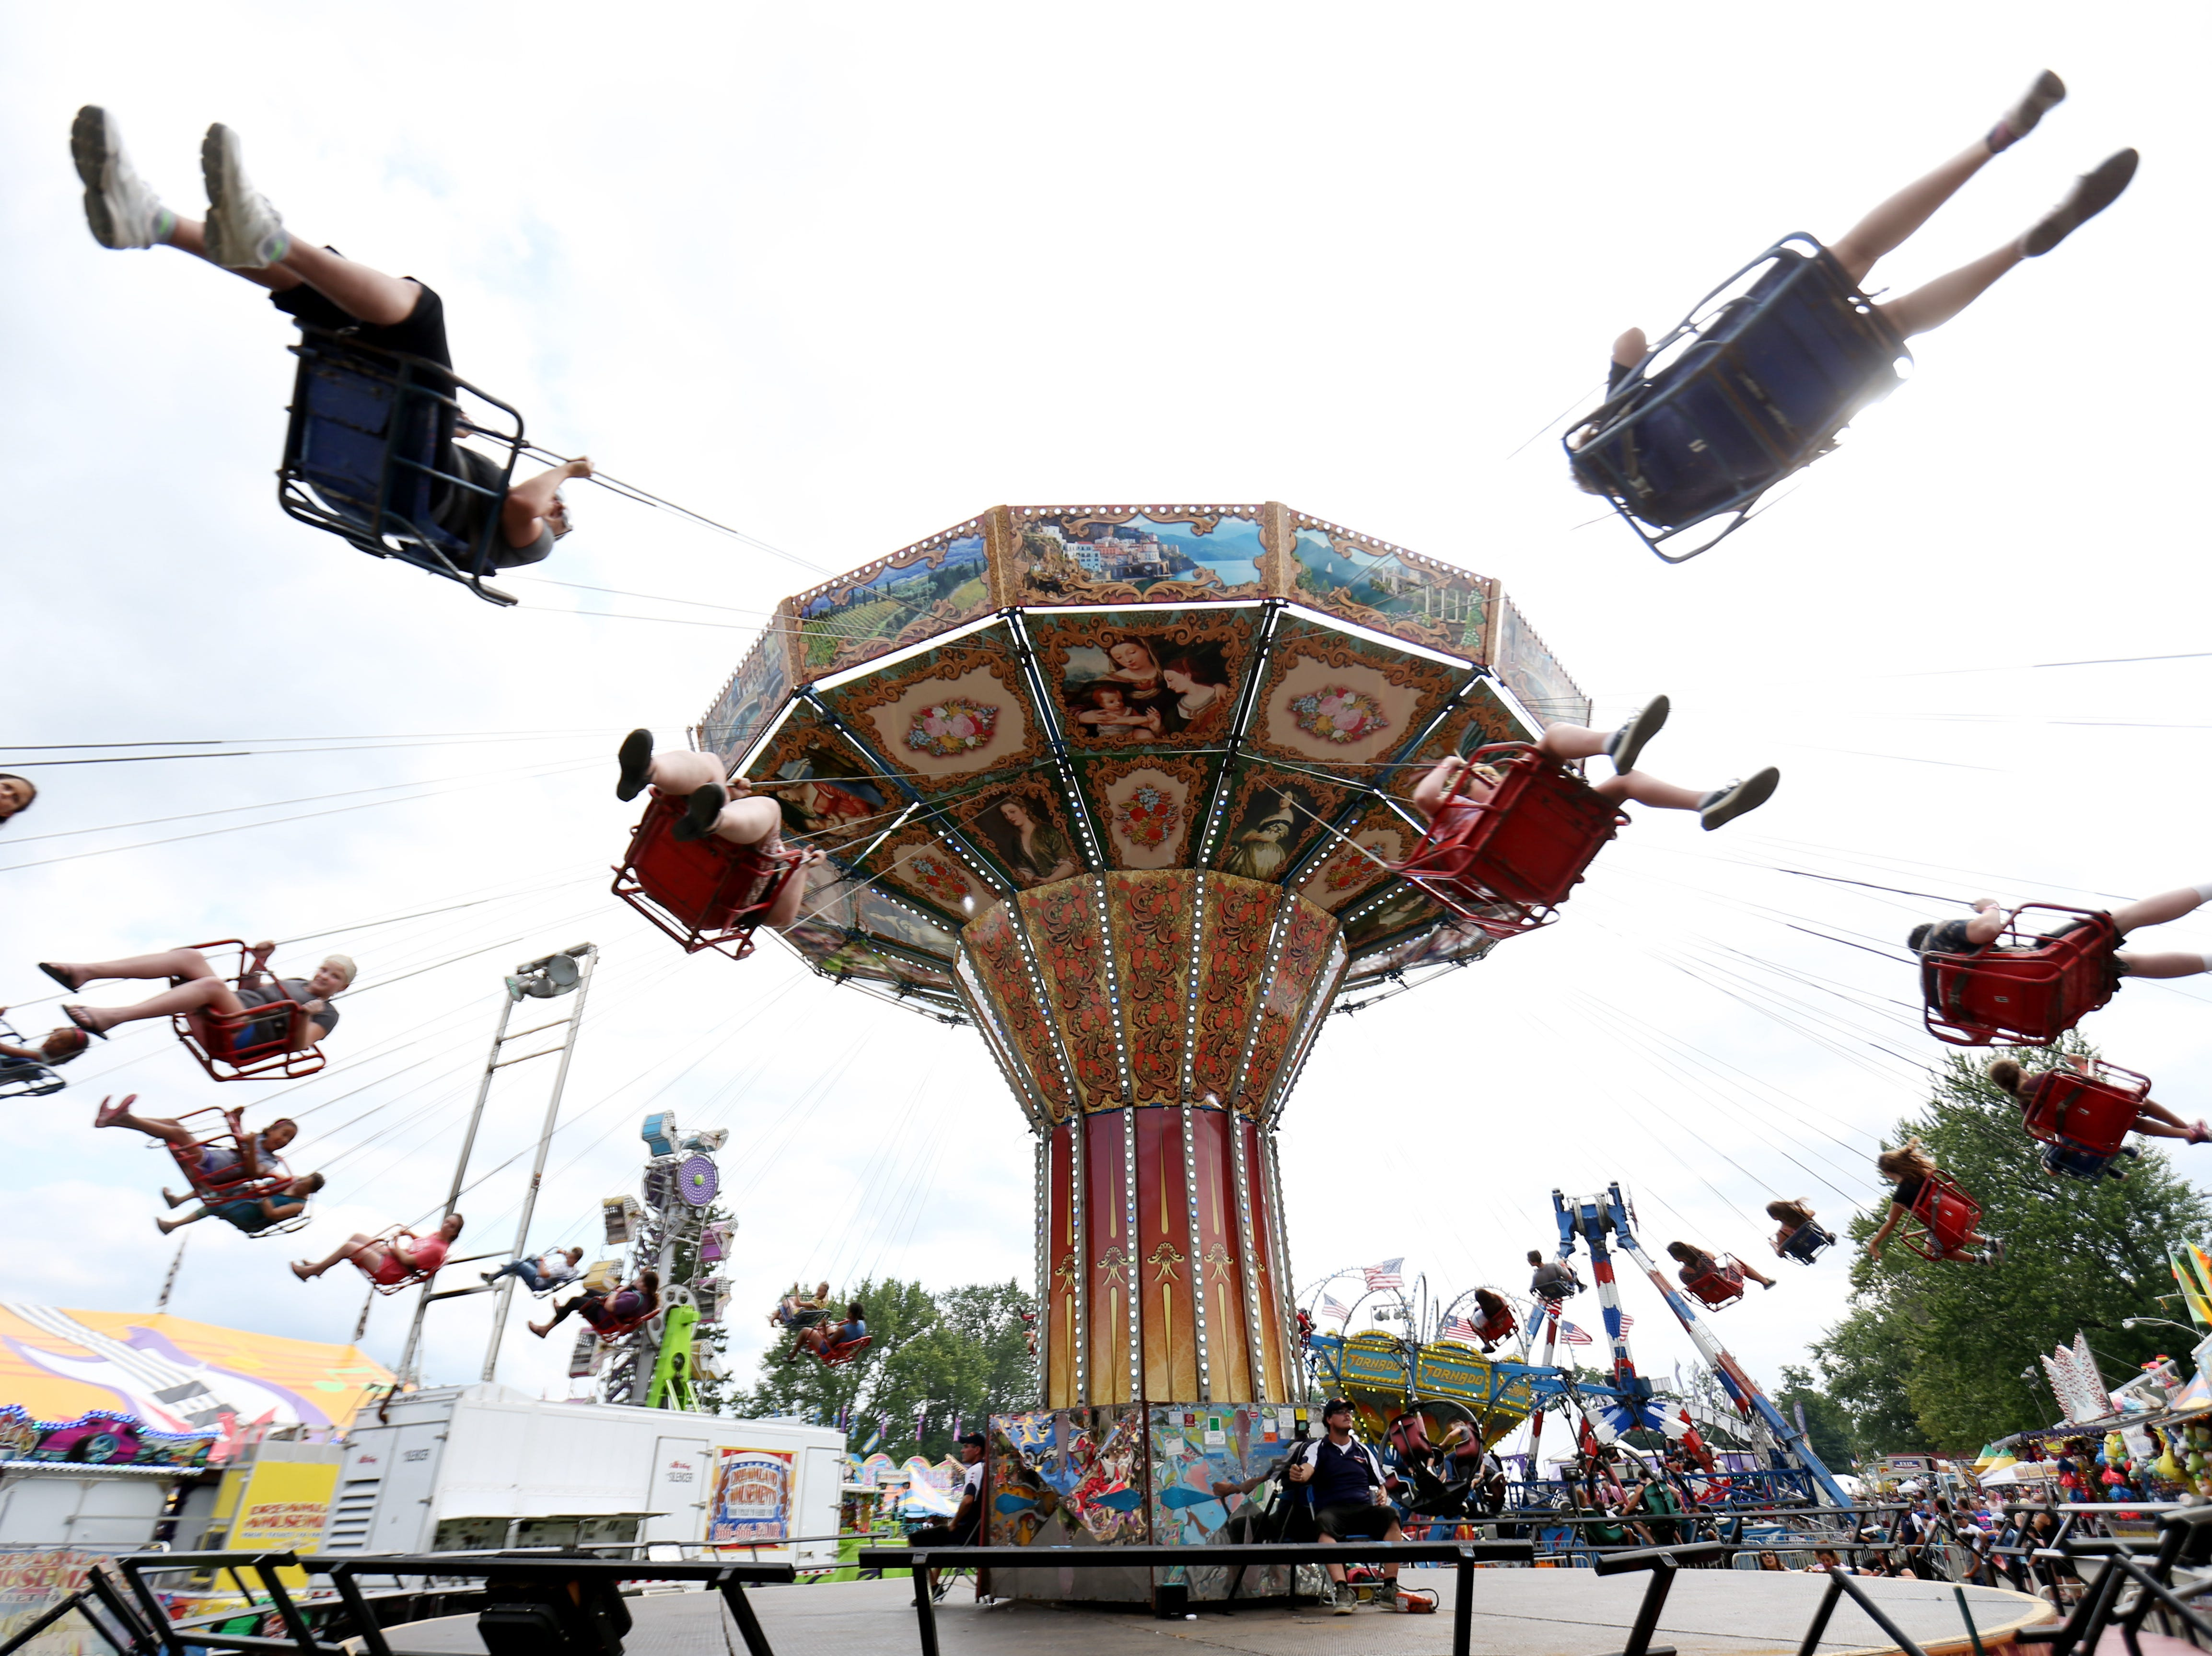 The swings carry riders during the Ulster County Fair in New Paltz on July 31, 2018.